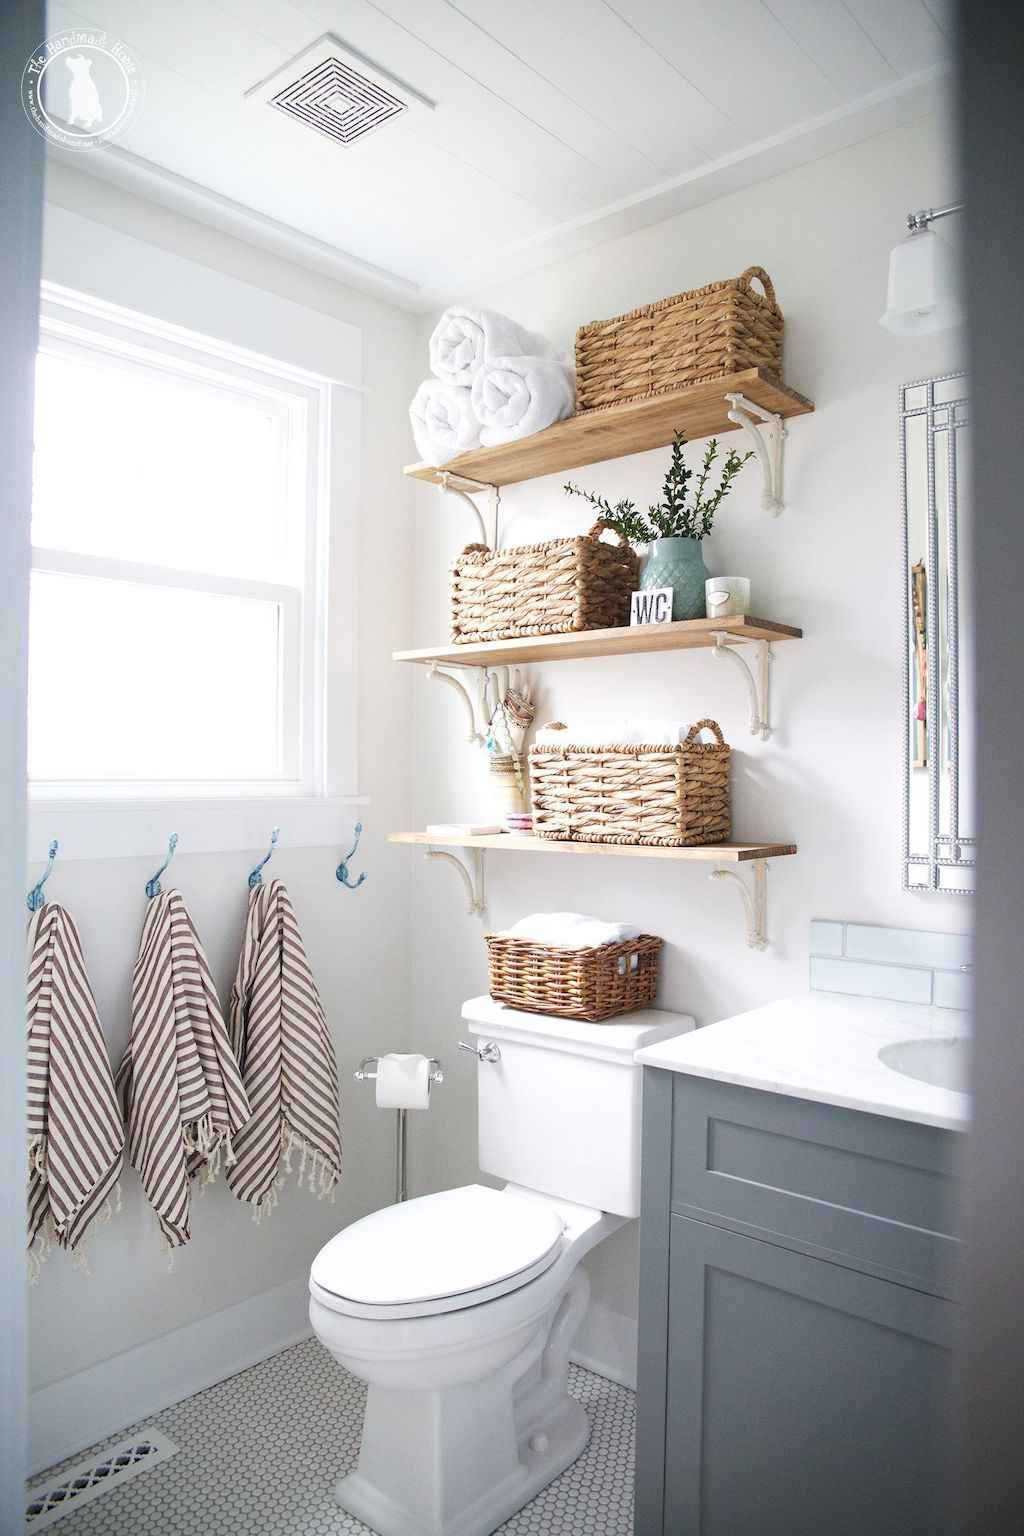 111 small bathroom remodel on a budget for first apartment ideas (20 ...